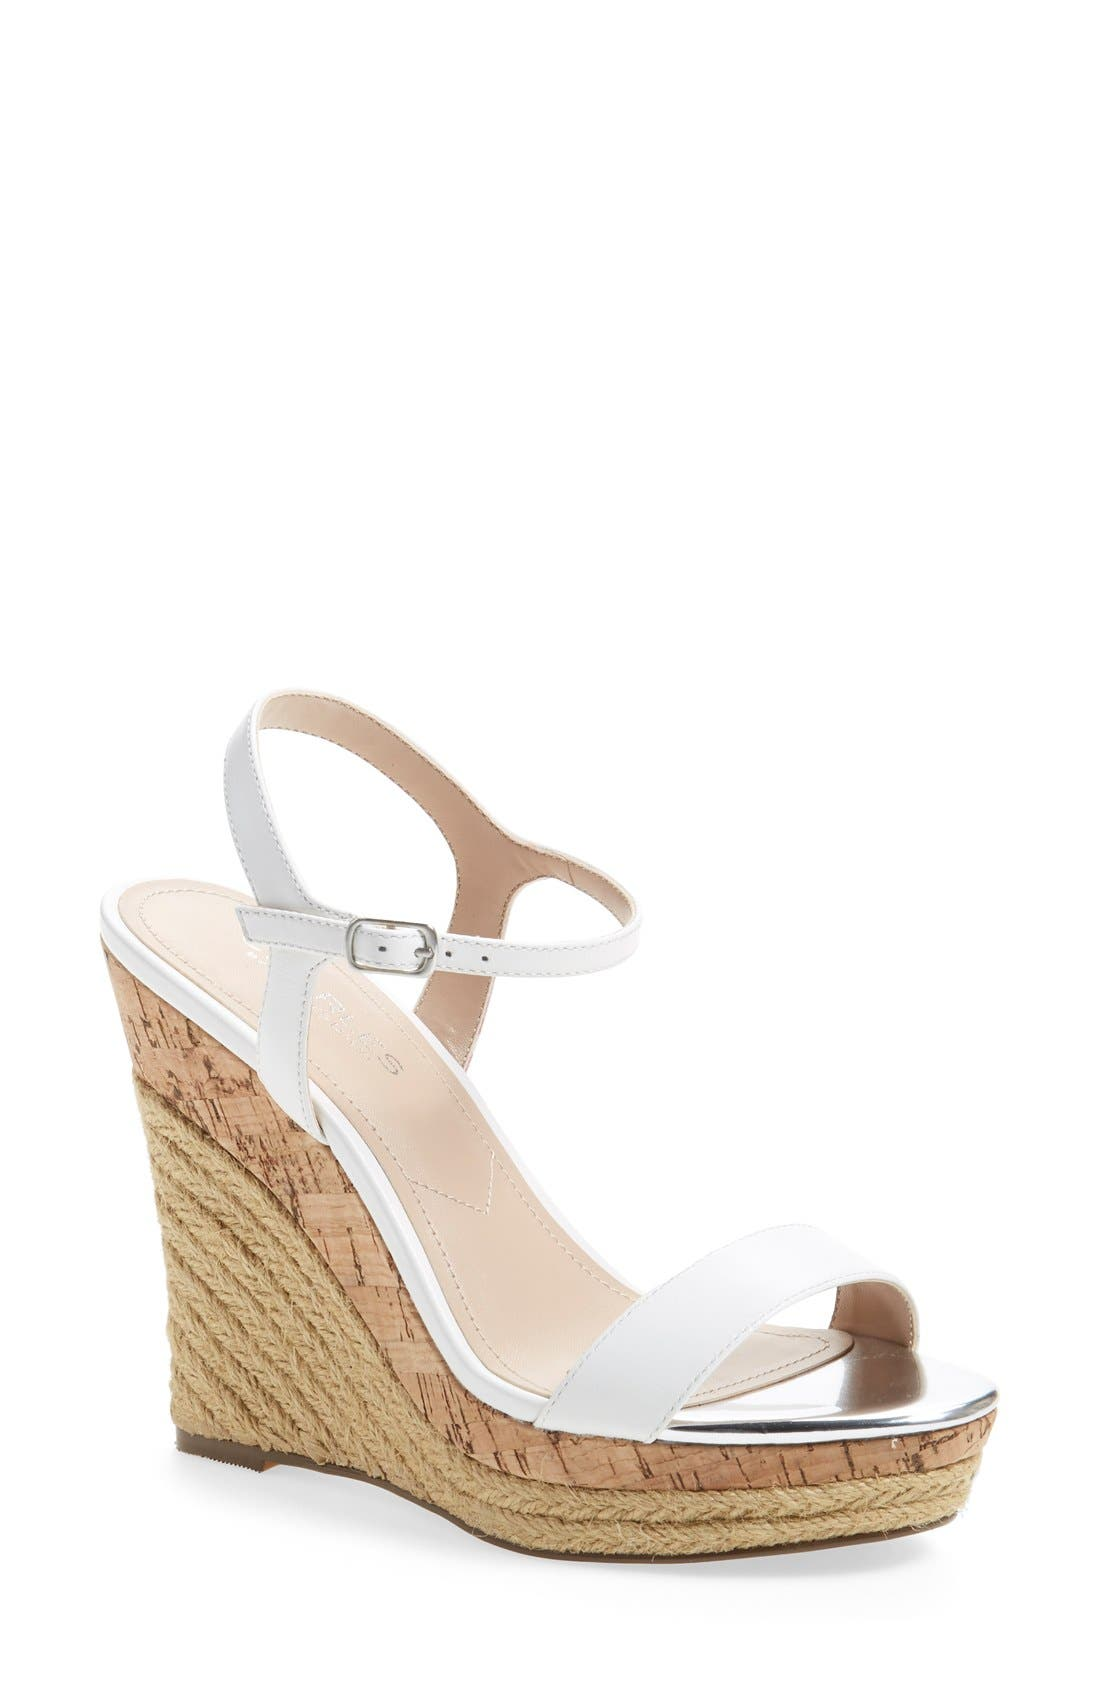 Alternate Image 1 Selected - Charles by Charles David 'Arizona' Espadrille Wedge (Women)